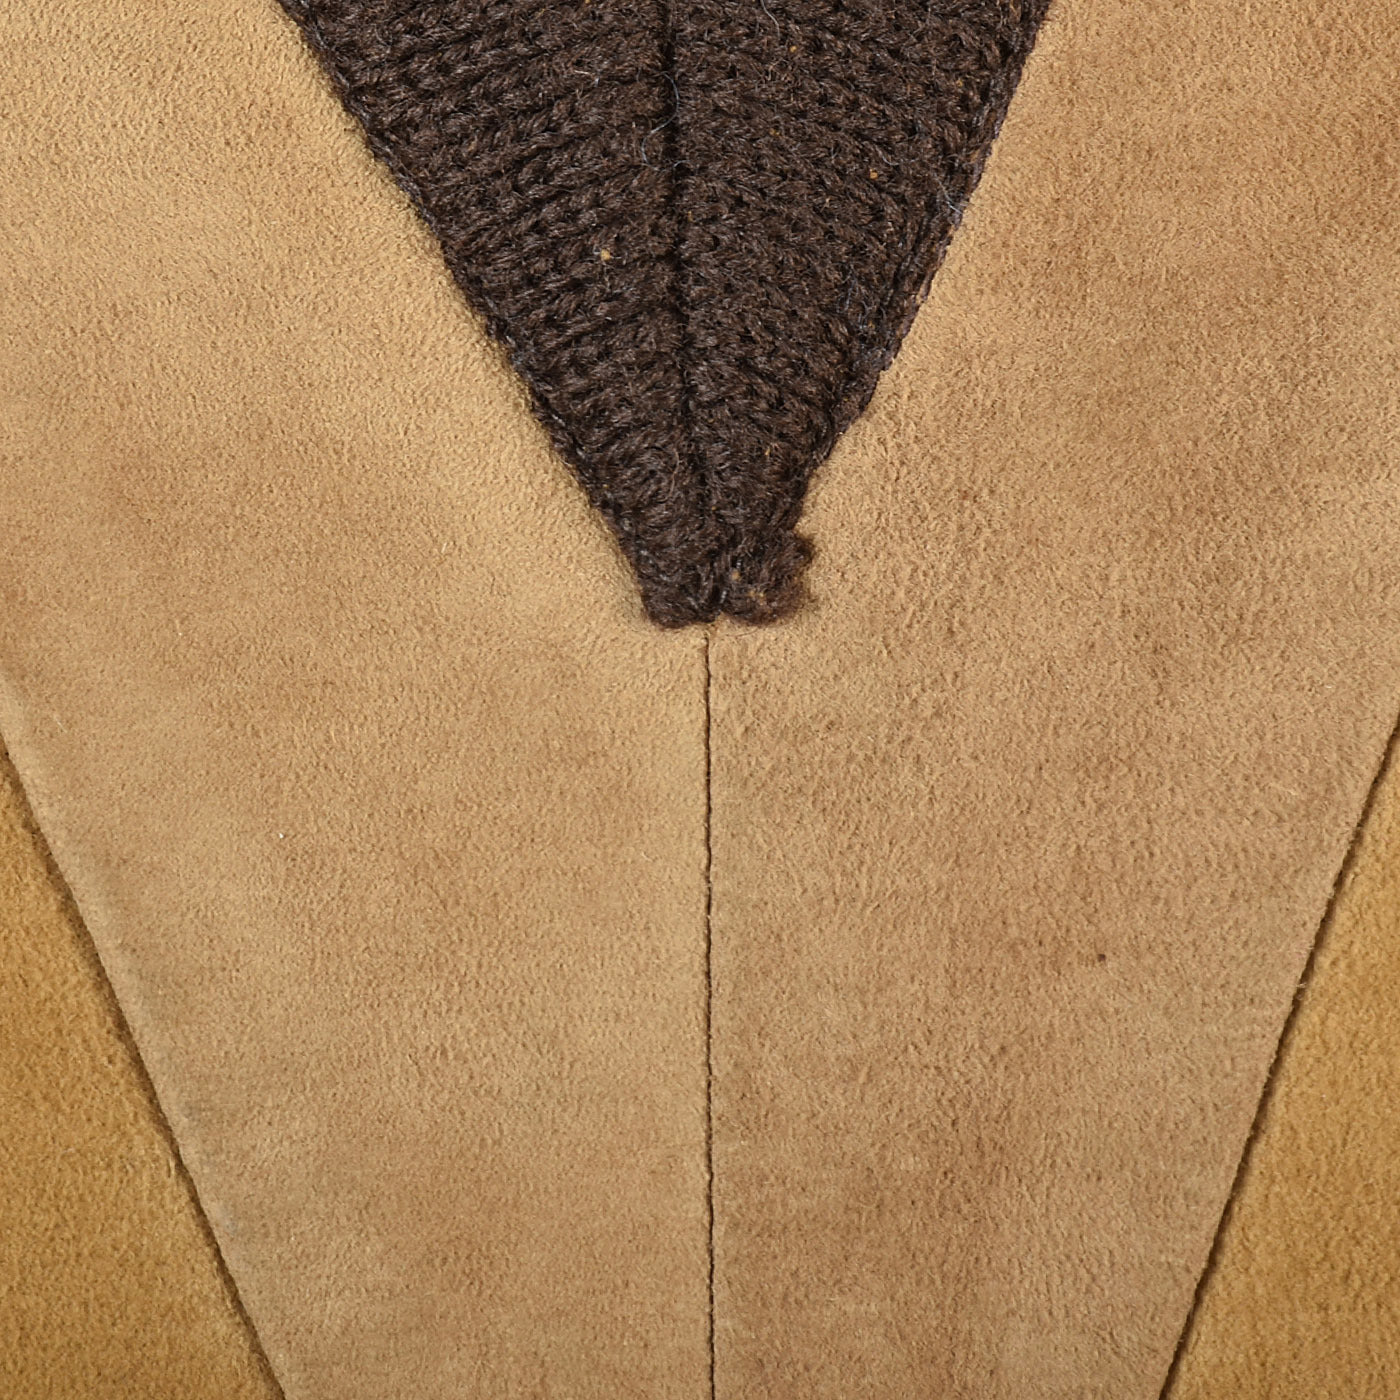 1960s Men's Suede Leather & Wool Knit Pullover Sweater